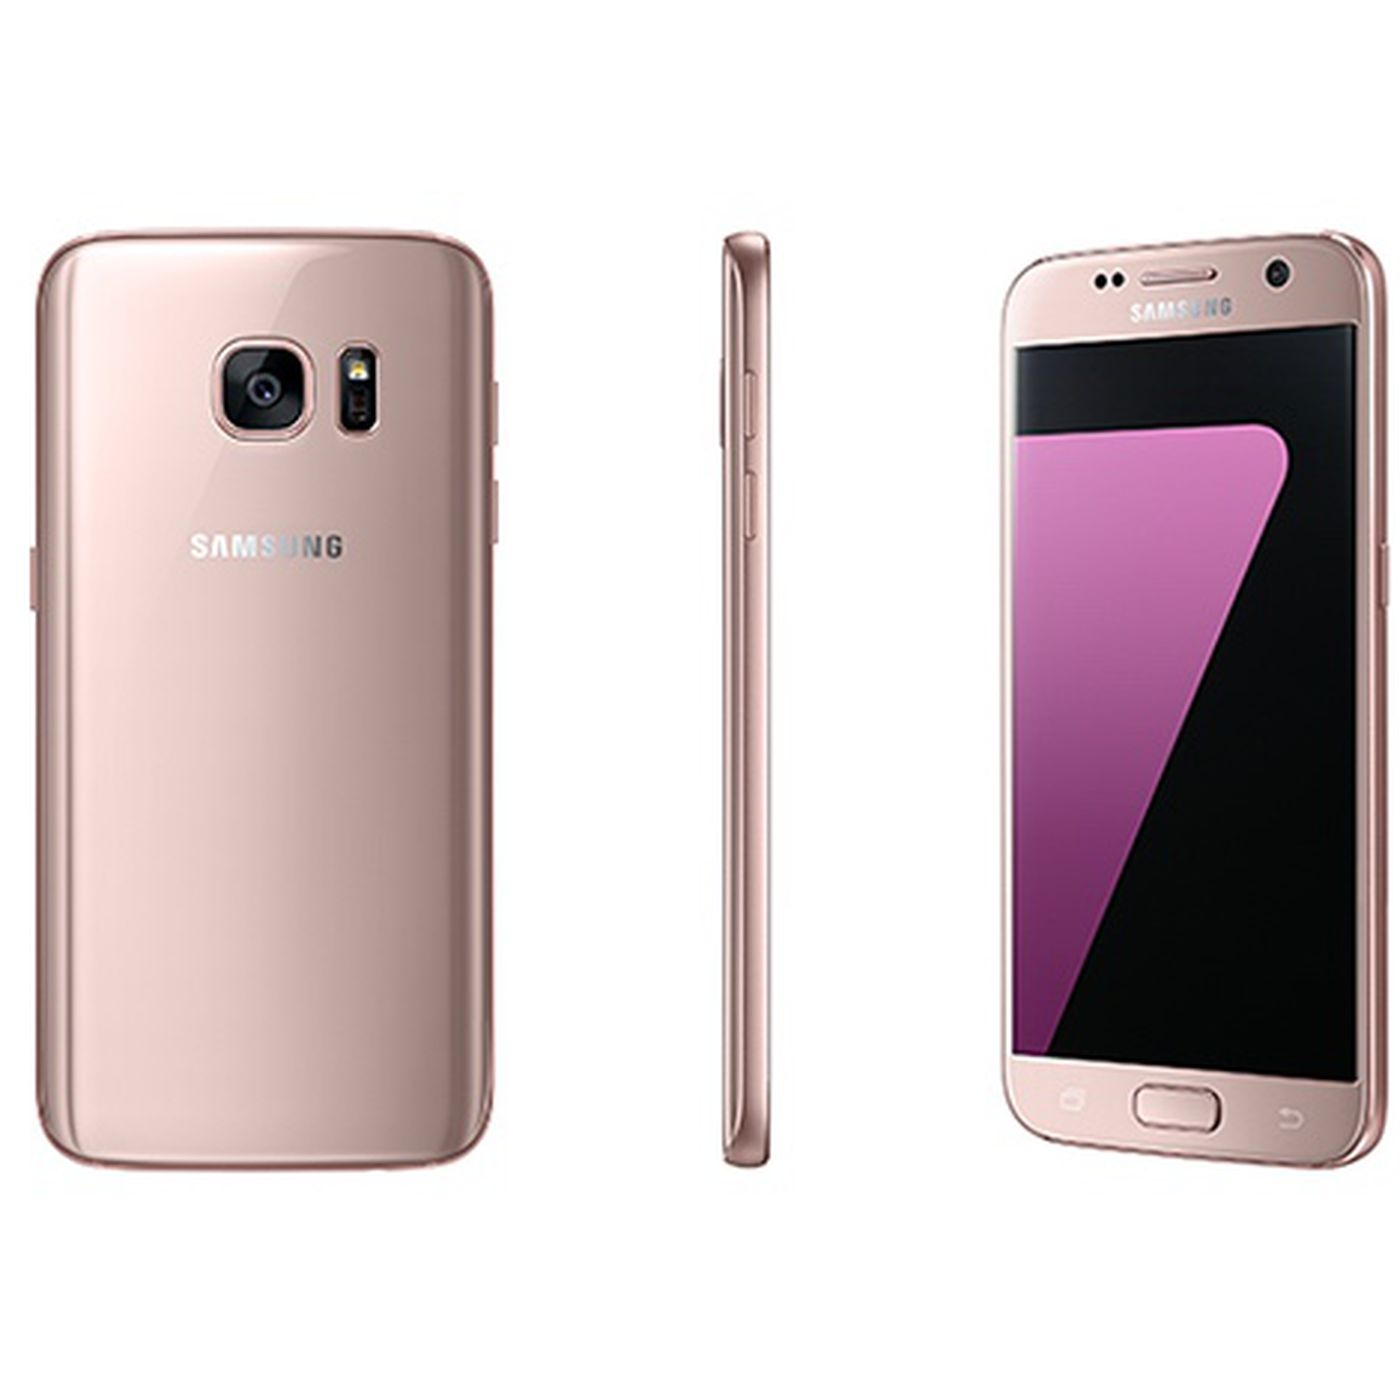 Samsung Announces Pink Gold Version Of Galaxy S7 And S7 Edge The Verge